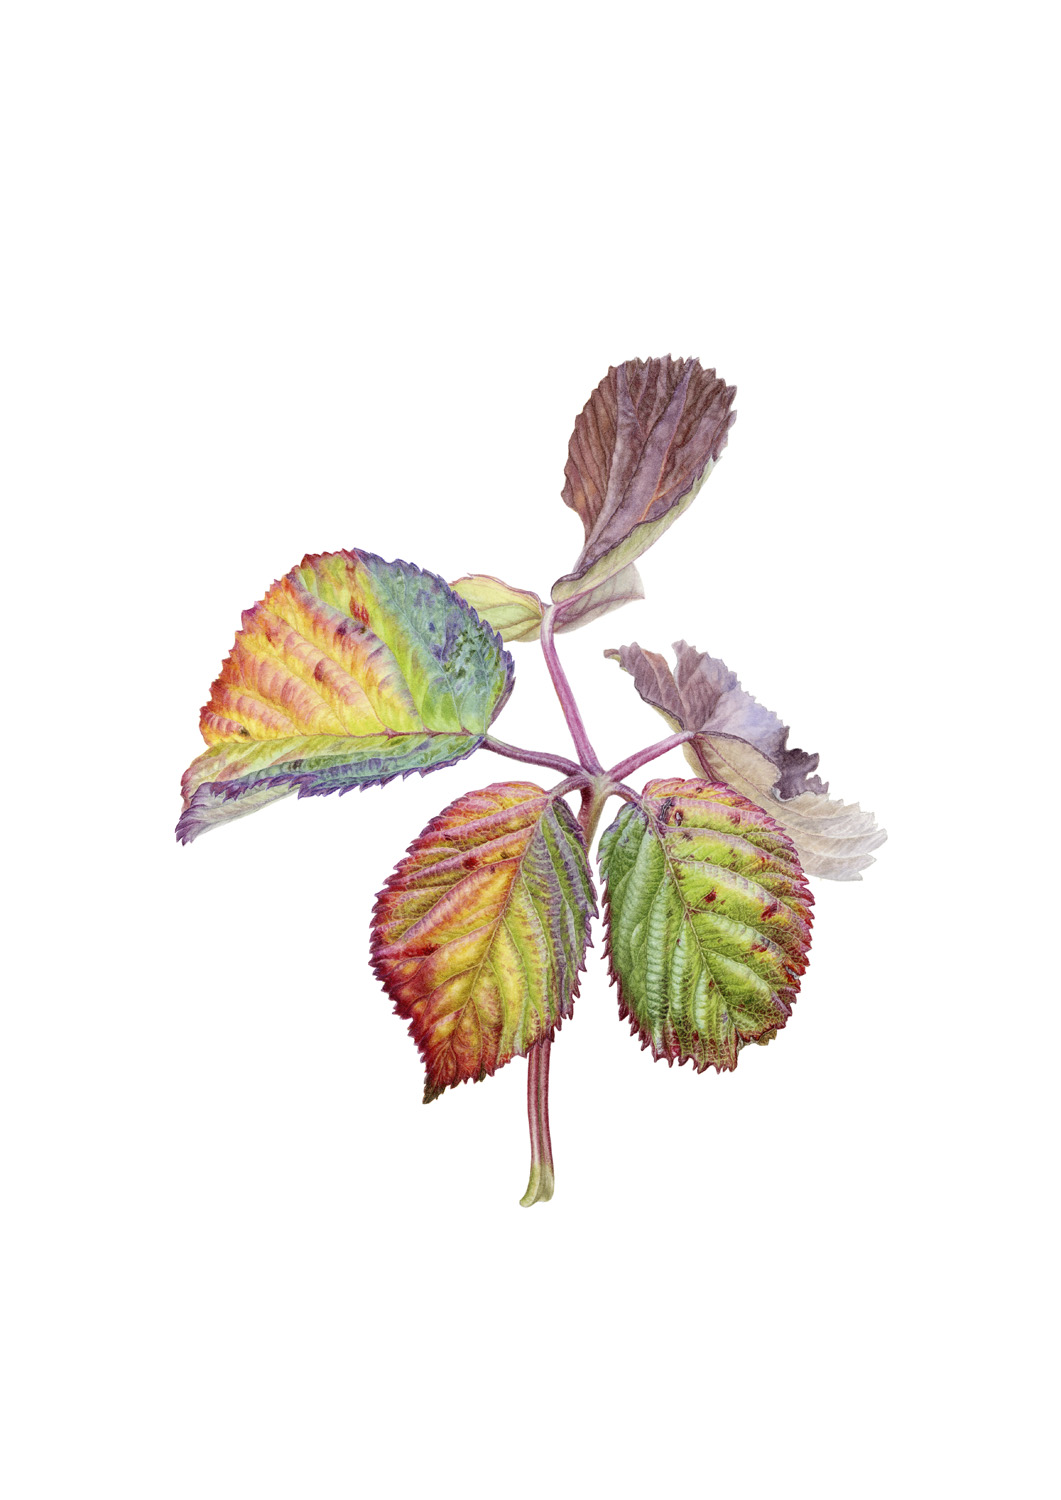 Thornless blackberry leaflets